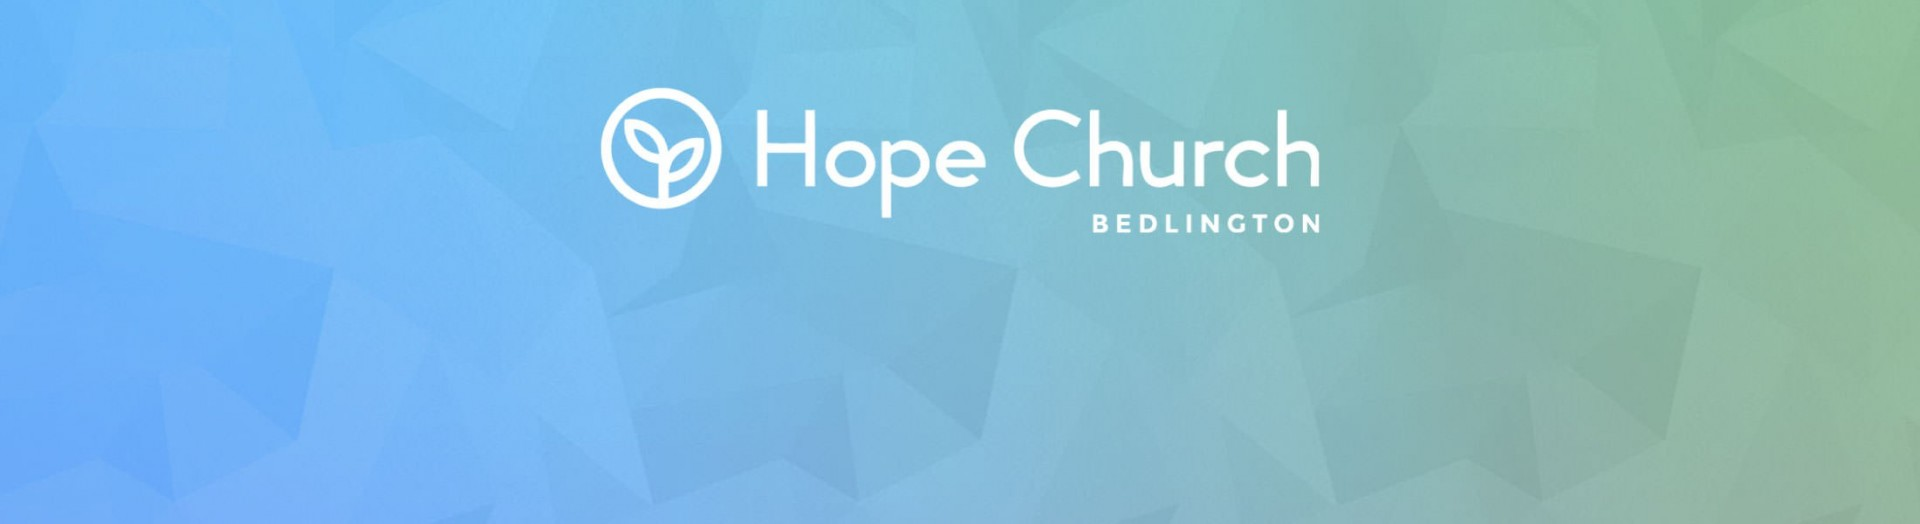 Welcome to Hope Church Bedlington